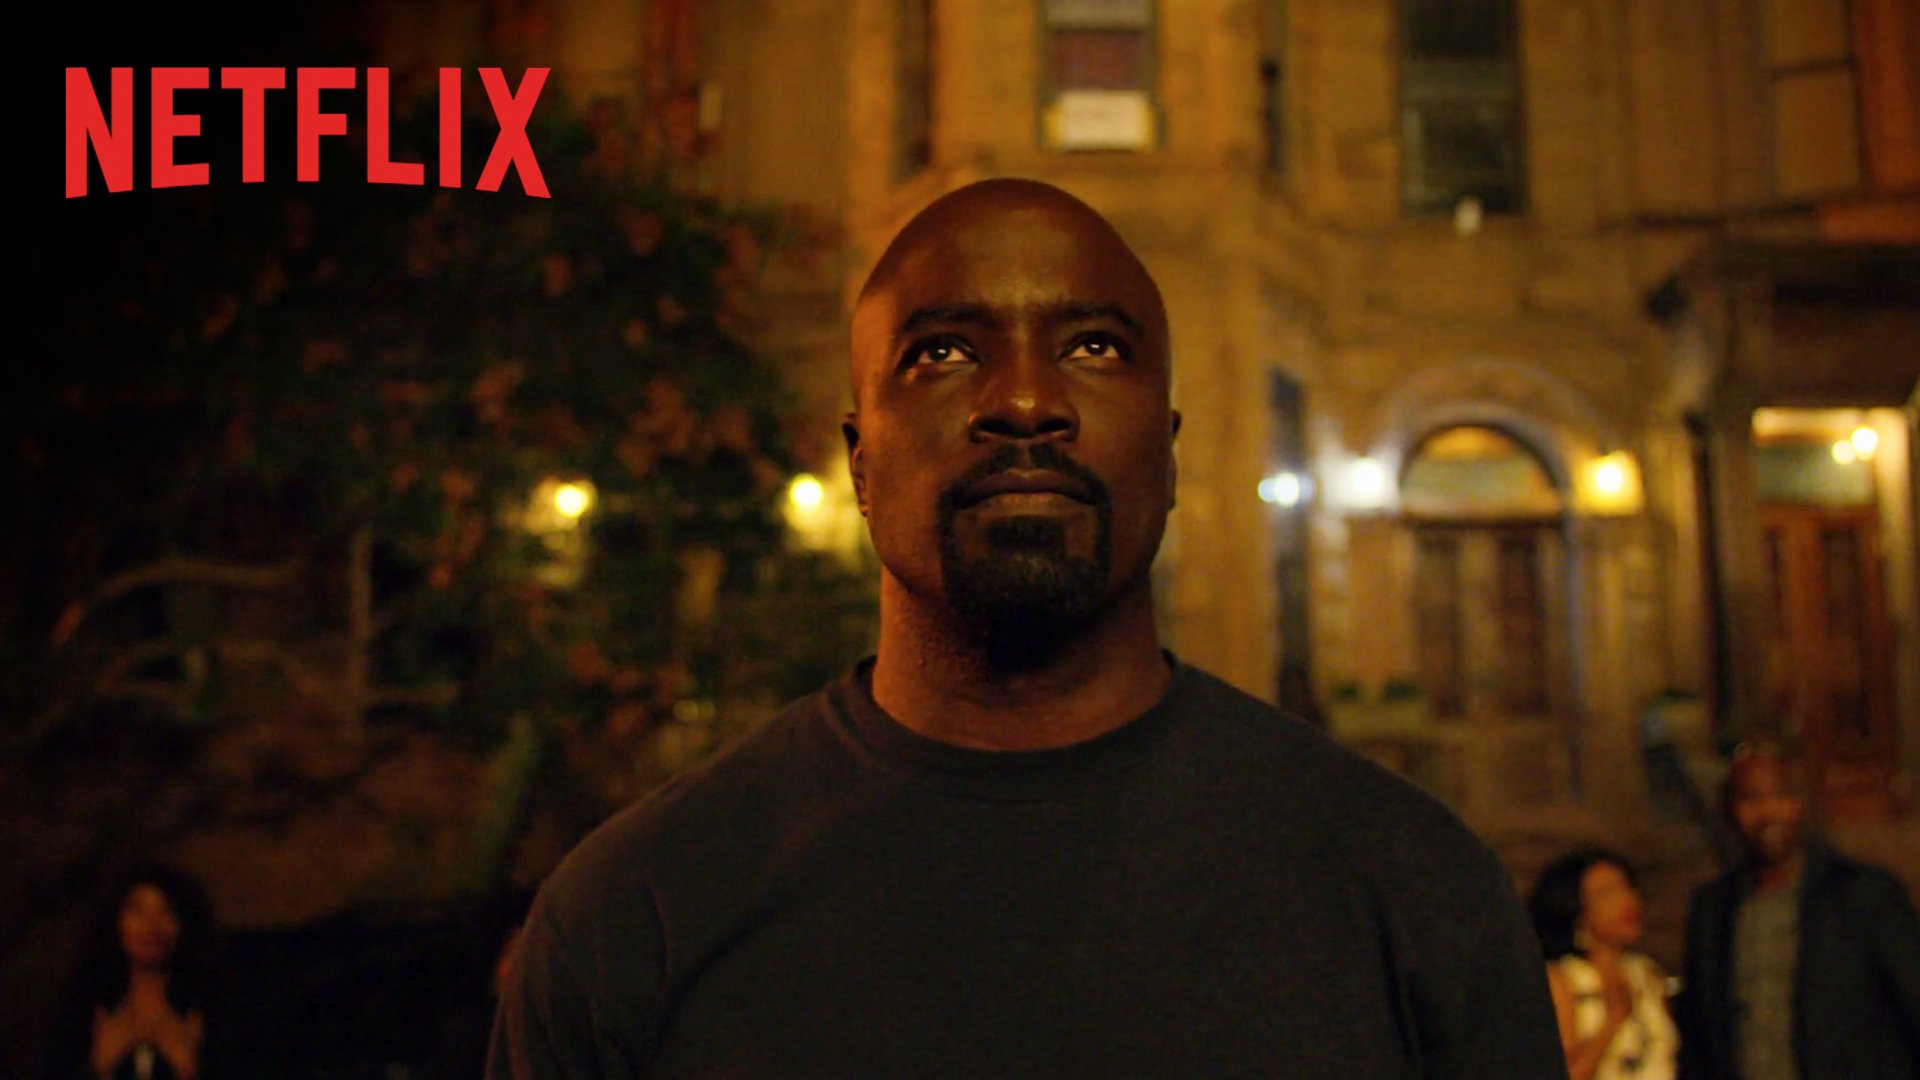 'You want to test me? You know where to find me.' #LukeCage https://t.co/Ee7PpYaID6